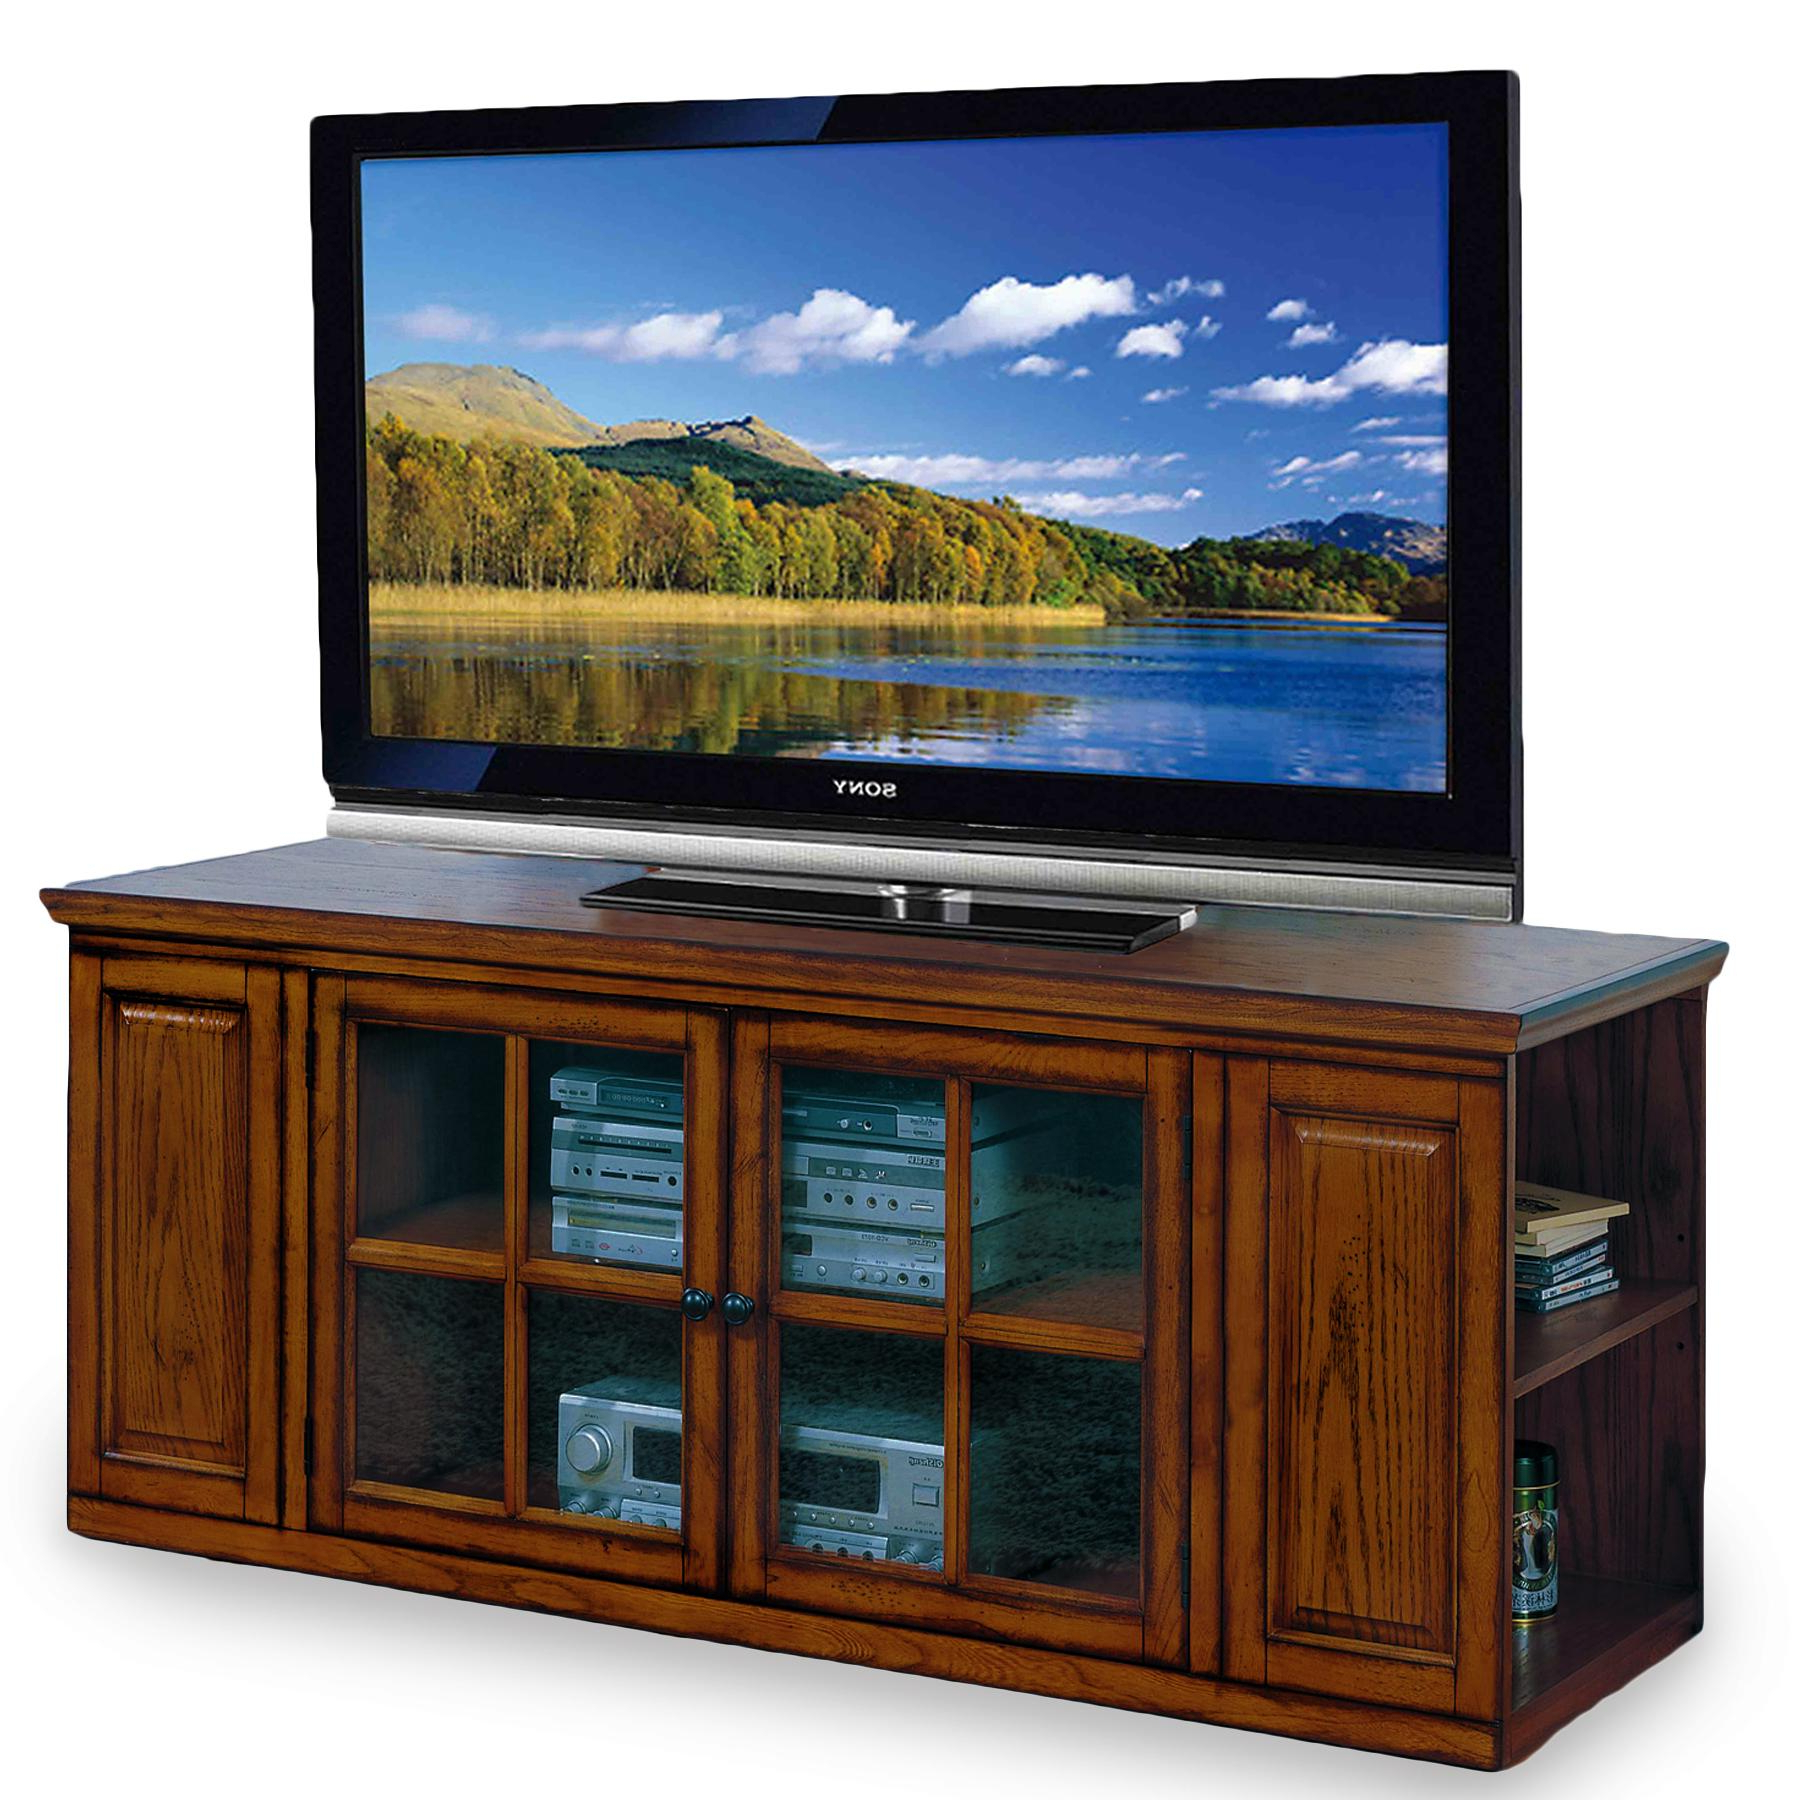 Tv Stands 40 Inches Wide With Regard To Most Recently Released Amazon: Leick Riley Holliday Tv Stand, 62 Inch, Burnished Oak (View 10 of 20)